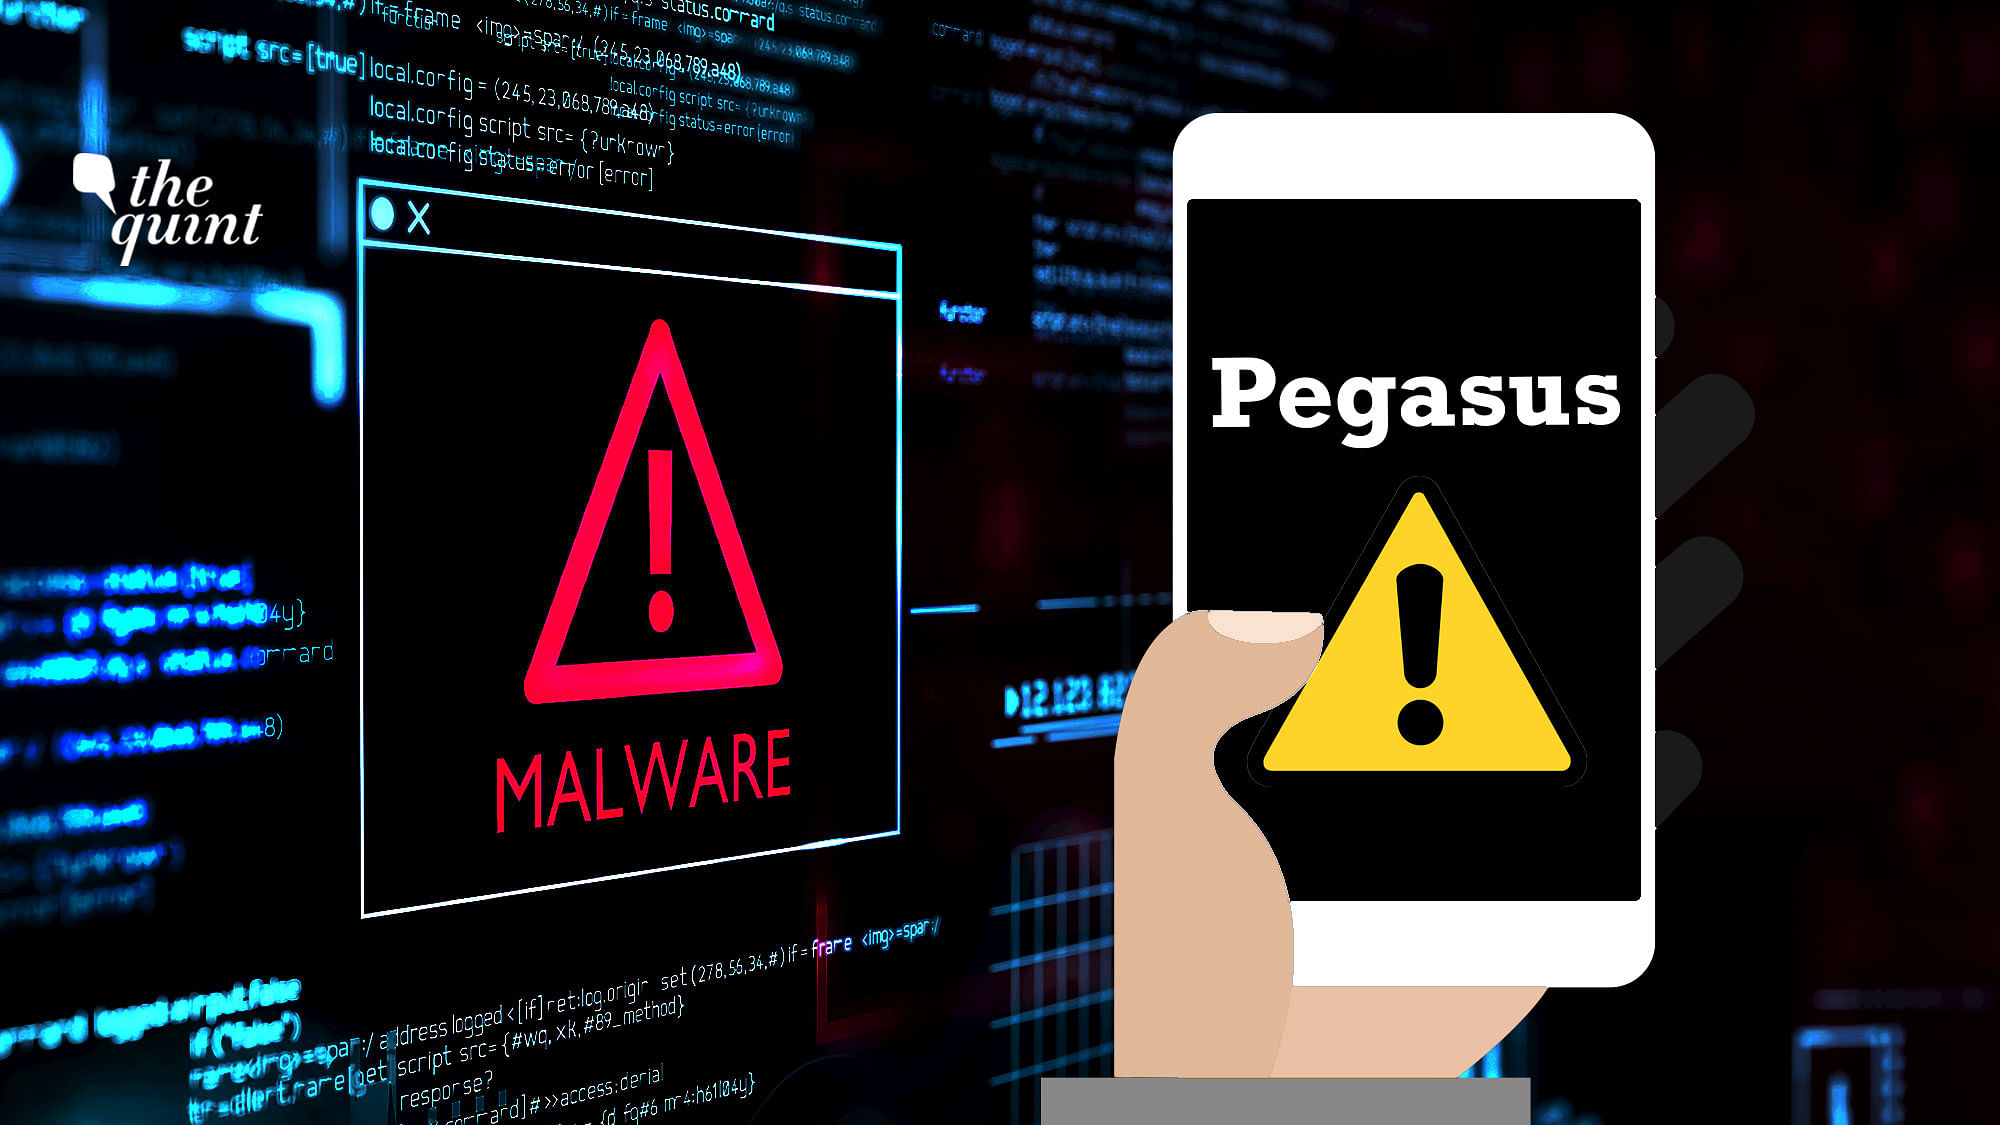 Explained: What is Pegasus Spyware & How to Know If You Have Been Affected